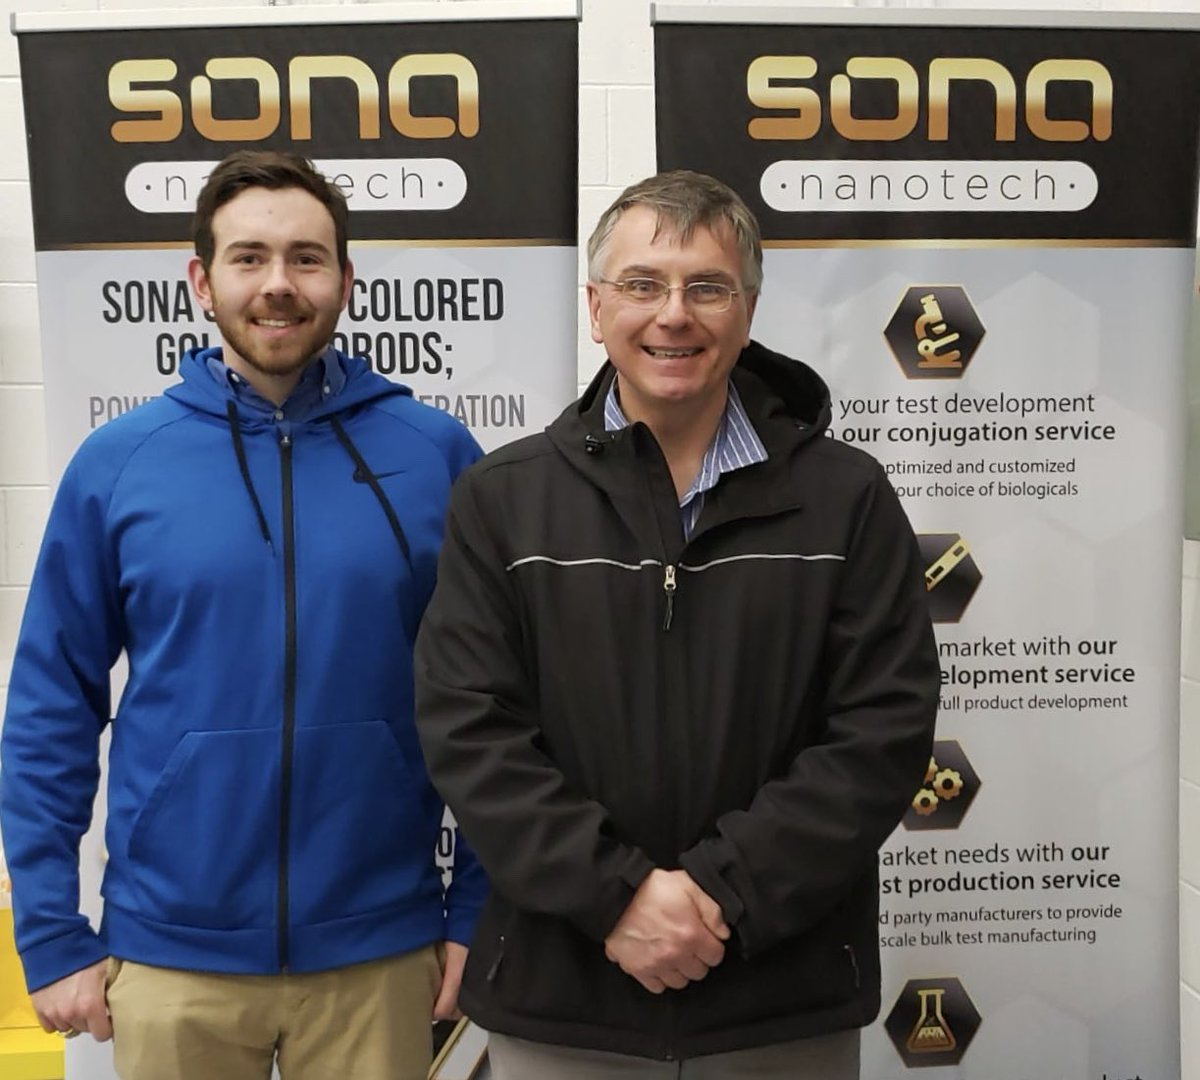 It was lovely to welcome one of Sona's original co-founders, professor Gerrard Marangoni (@gmsprezman, right), to our new lab @innovacorp yesterday with his son Matt. The pair were very impressed with our facilities. #laboratory #science #diagnostics https://t.co/hUqscSjLze